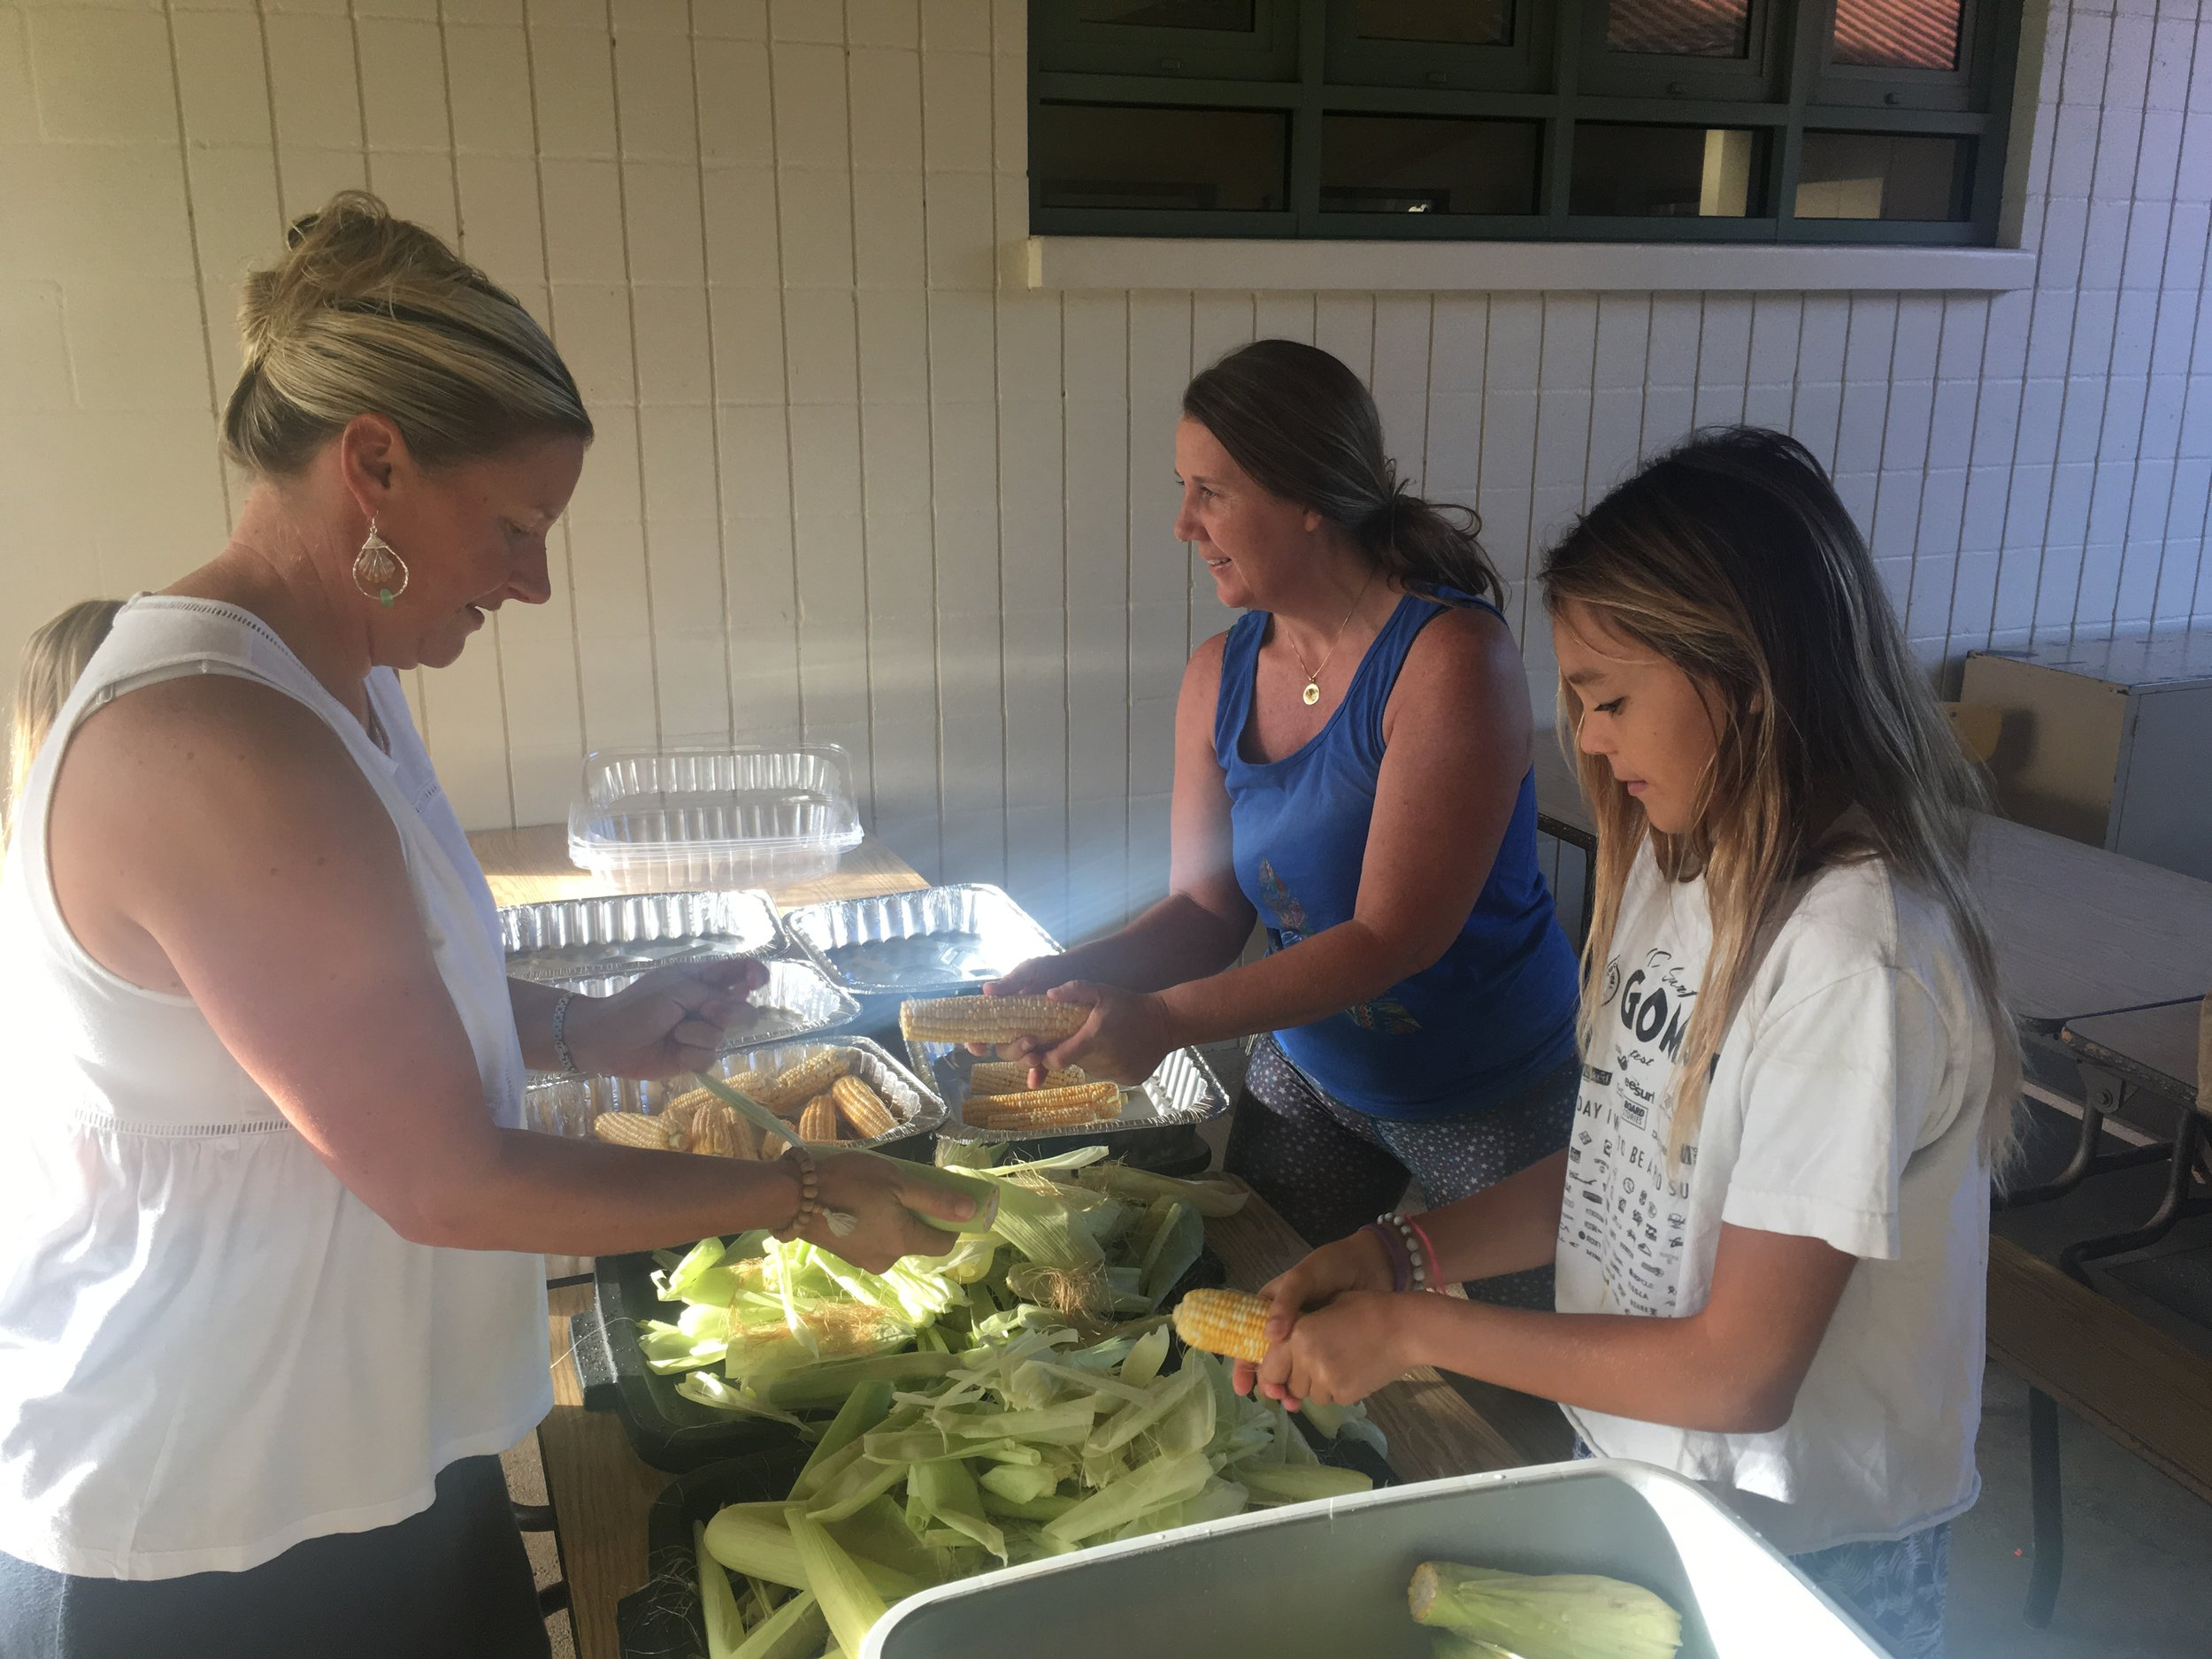 volunteer - Get involved with the community of Hanalei School Parents interested in making a difference. From helping with mailings, Fundraisers, Social Media etc… All help is most appreciated!